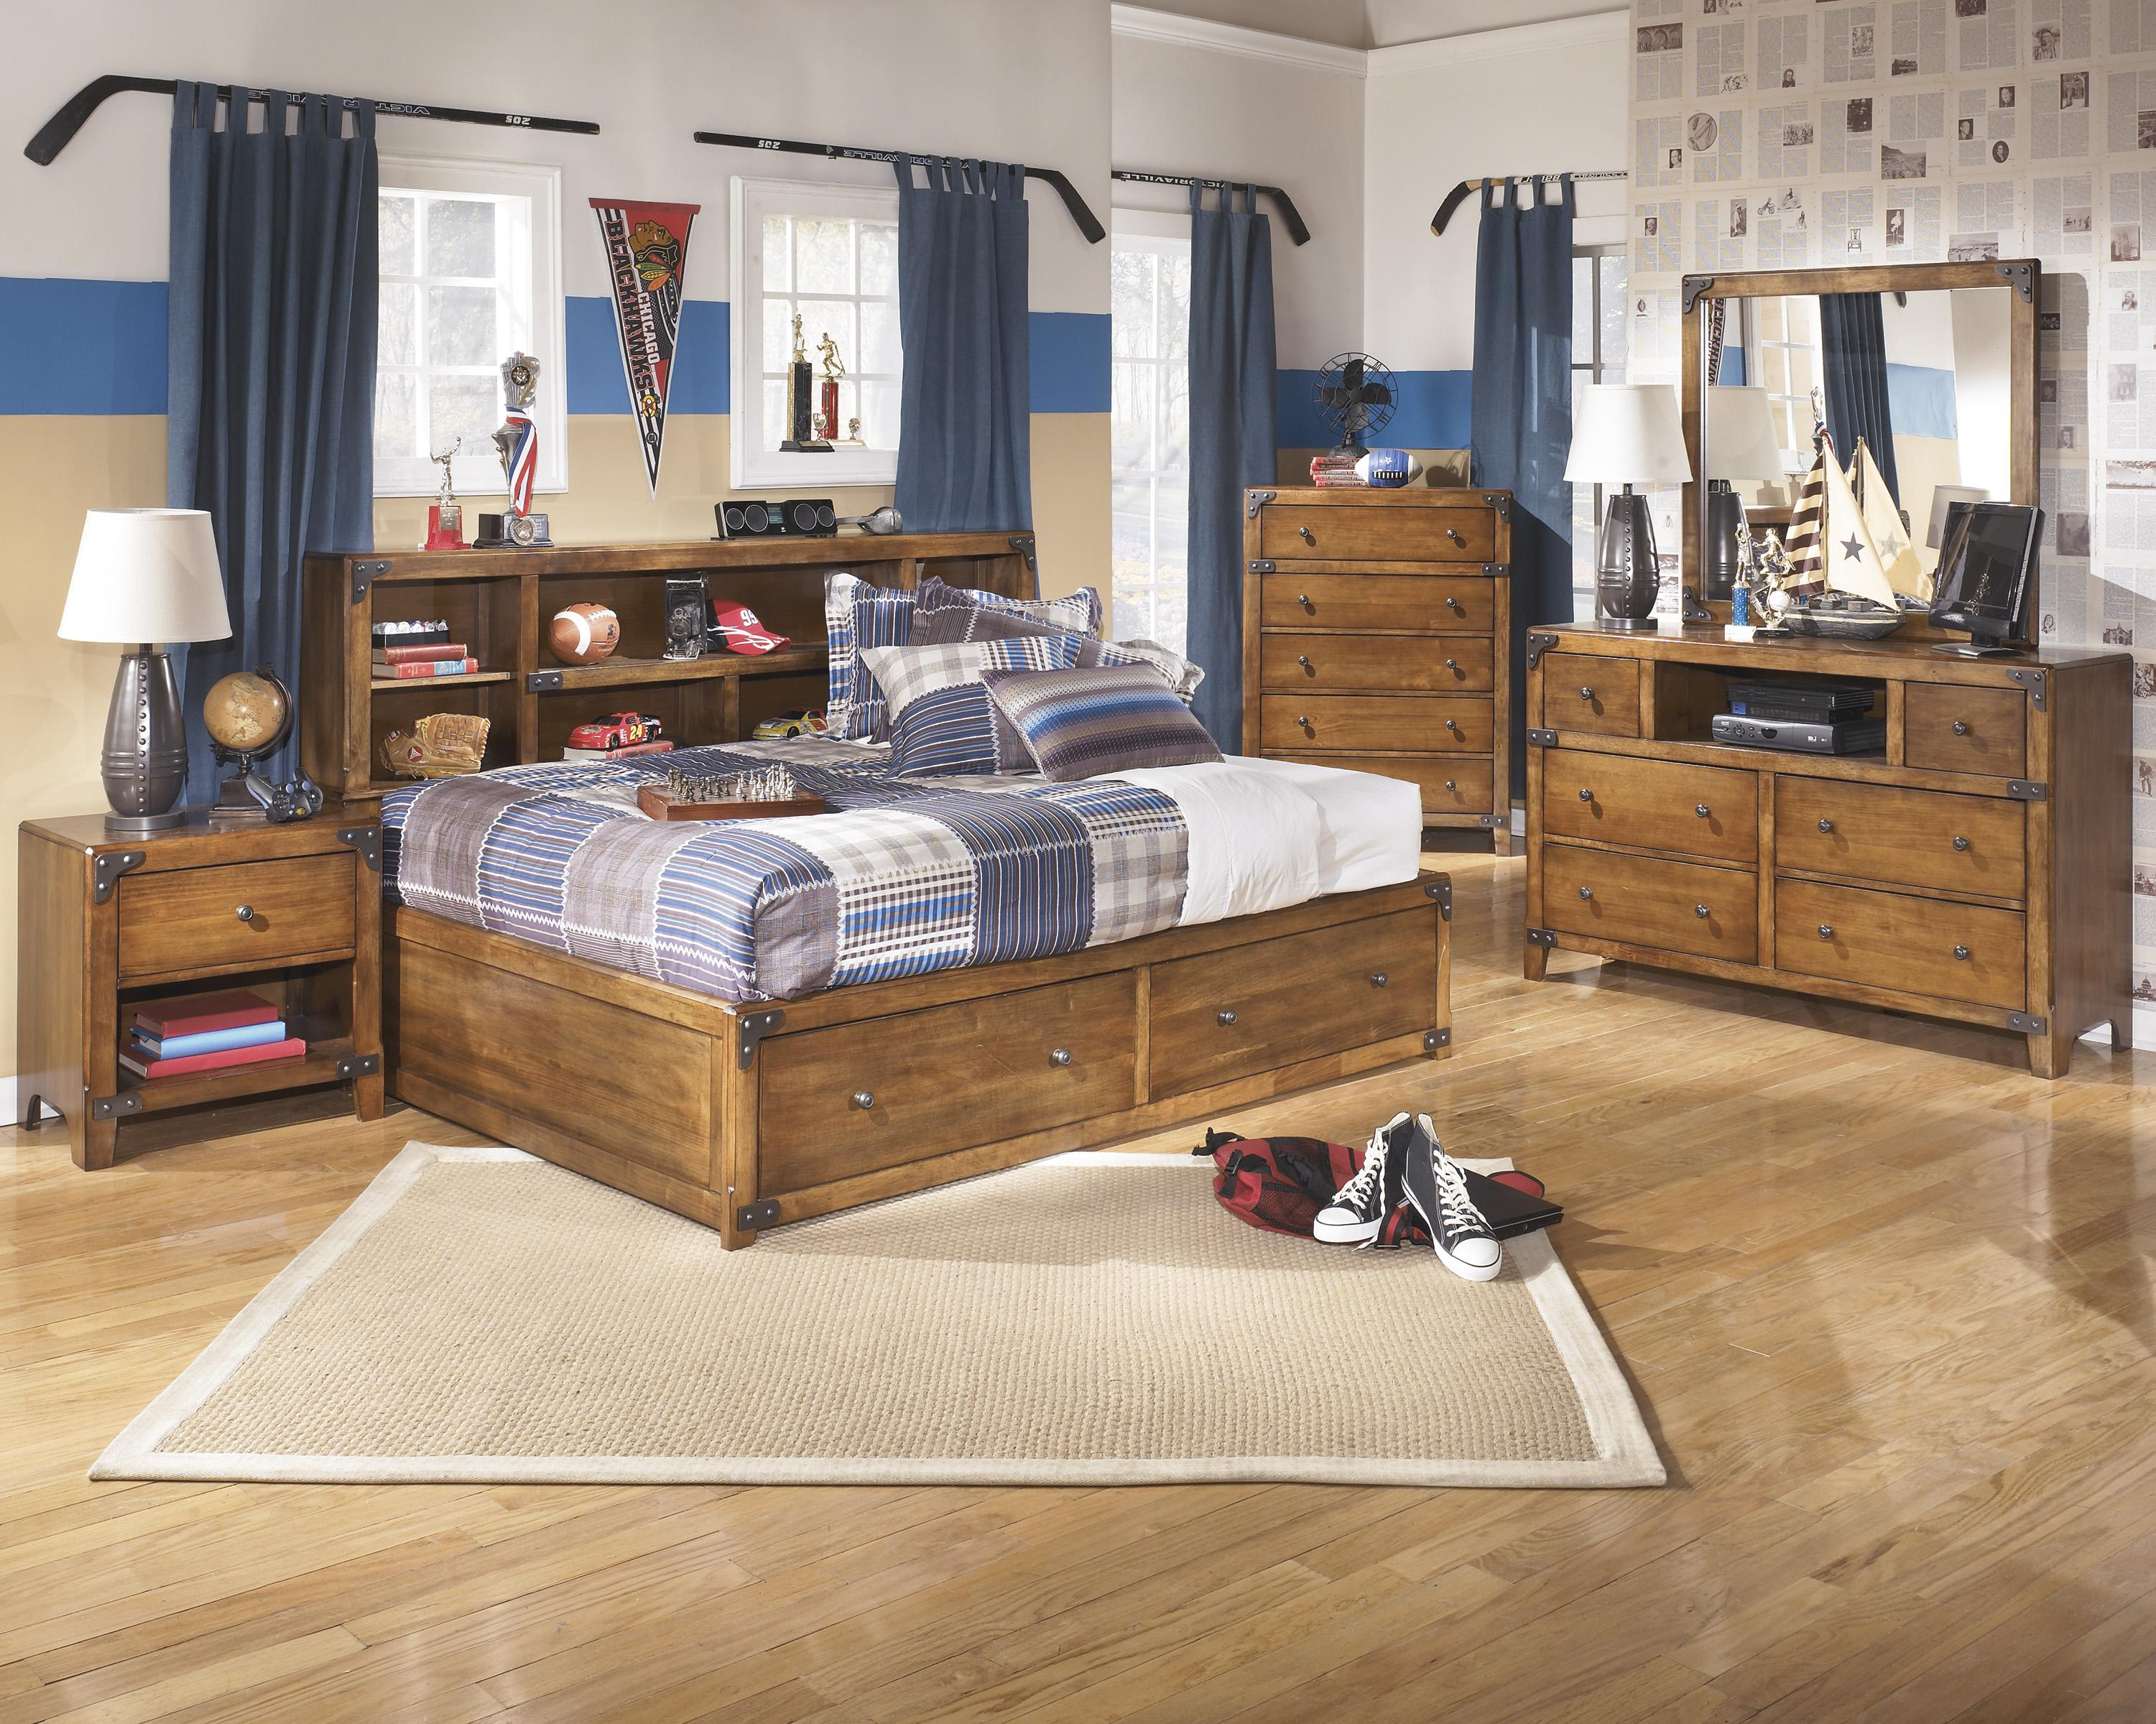 mattress furniture full phillipe direct product louis bed storage surrey and